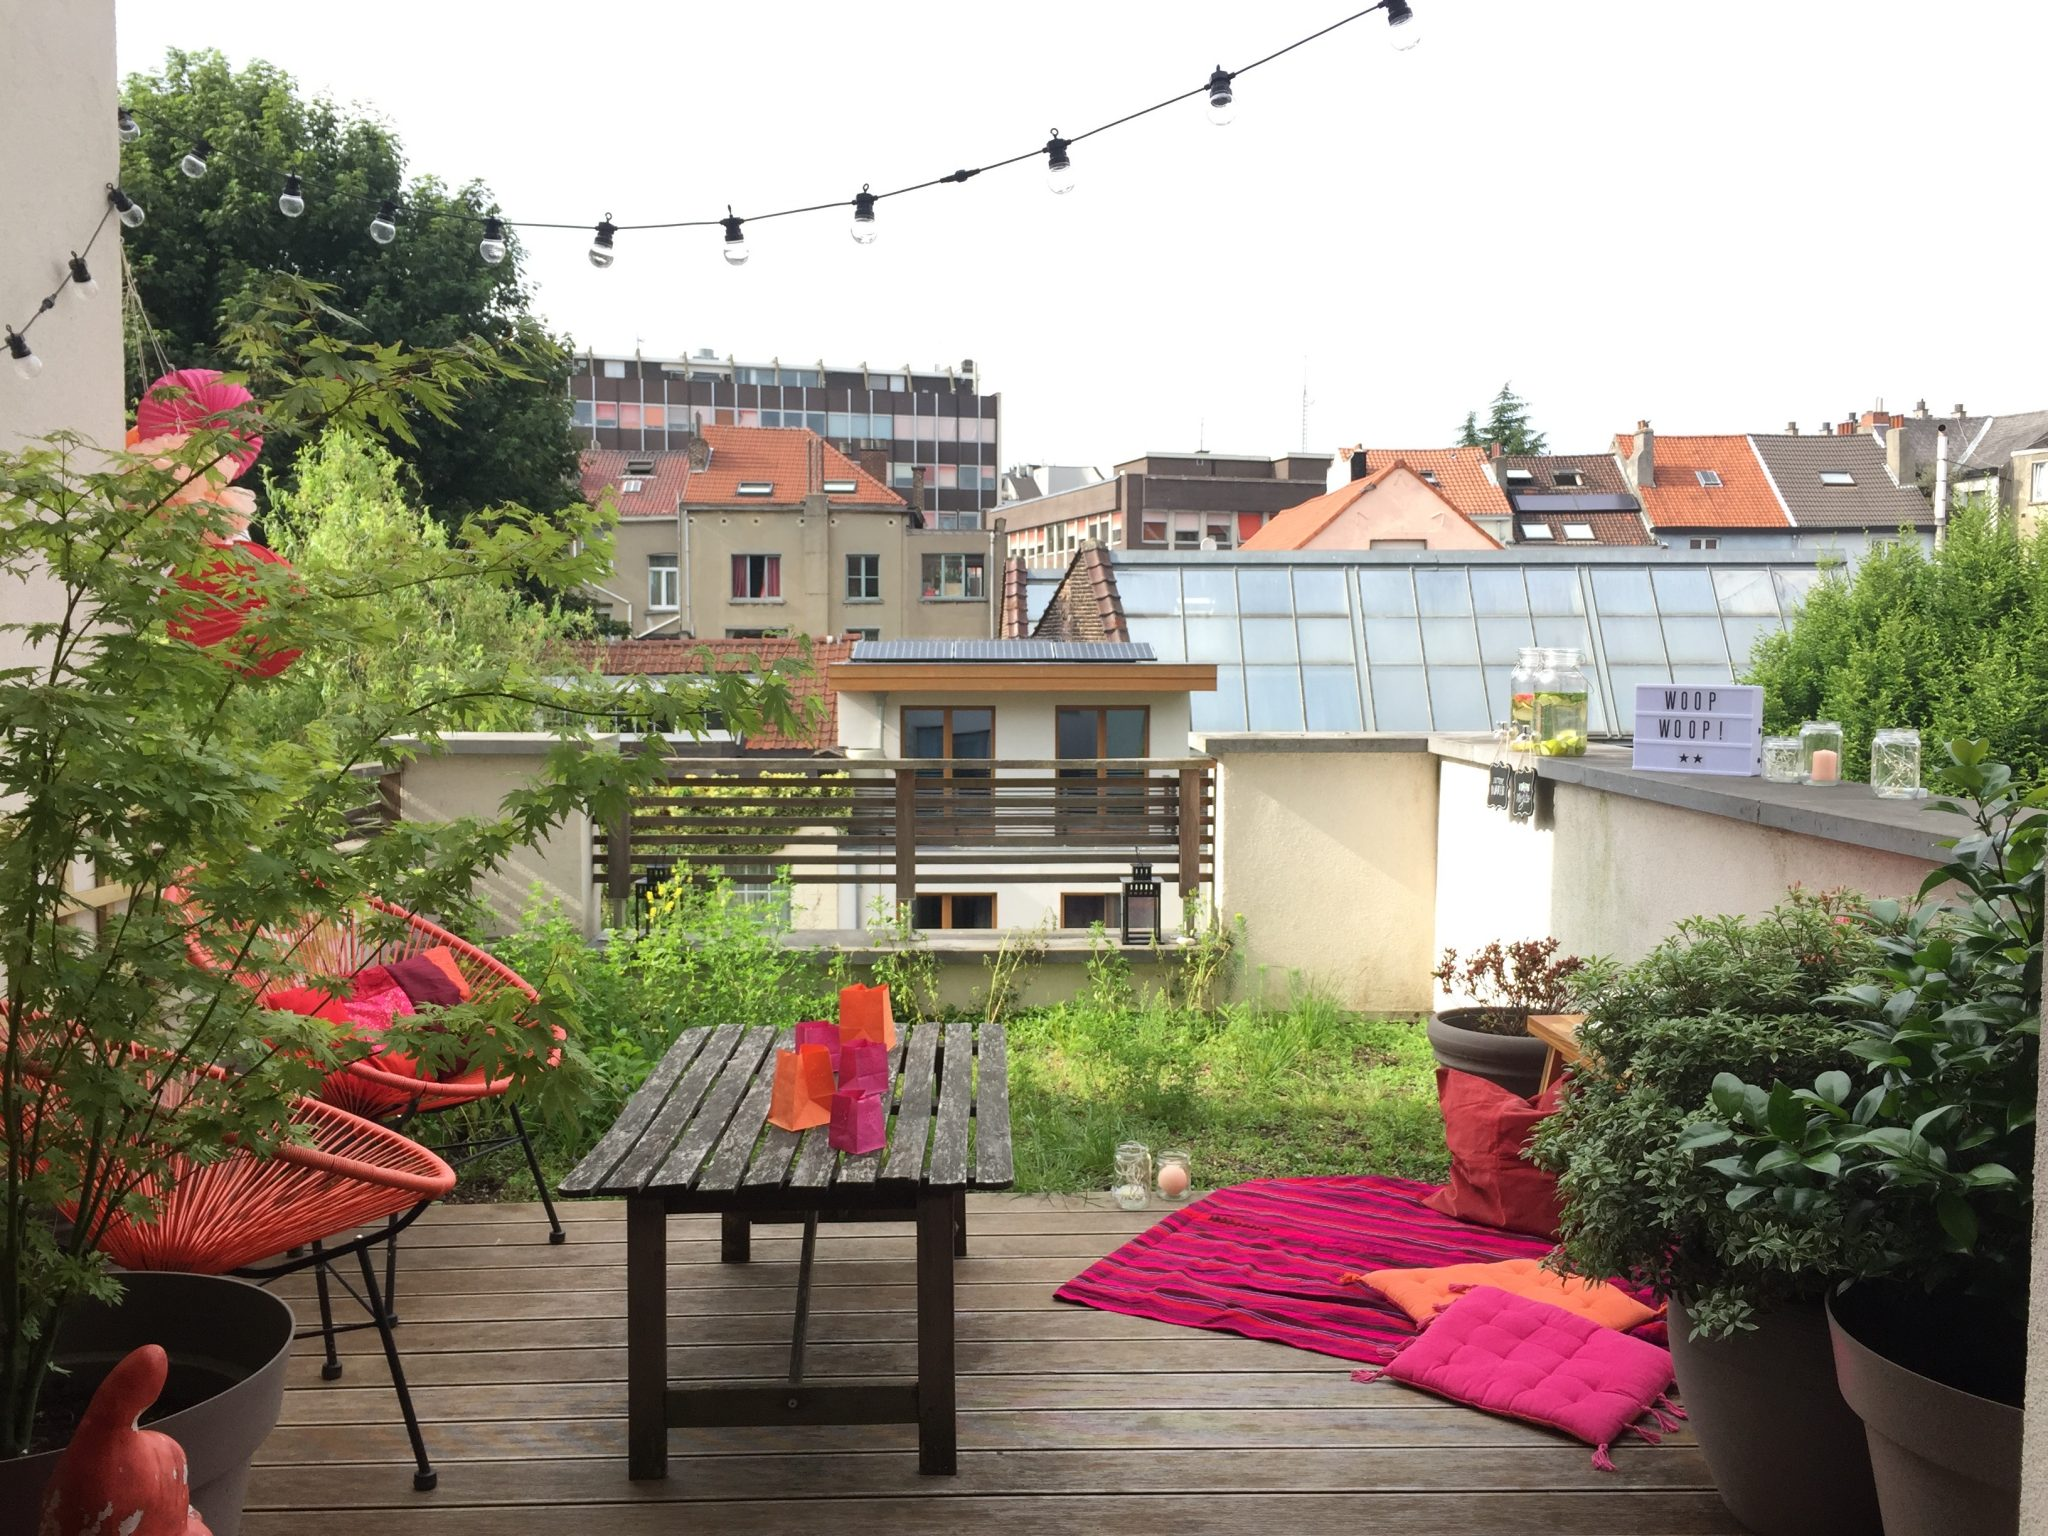 deco outdoor terrasse boheme rose orange corail